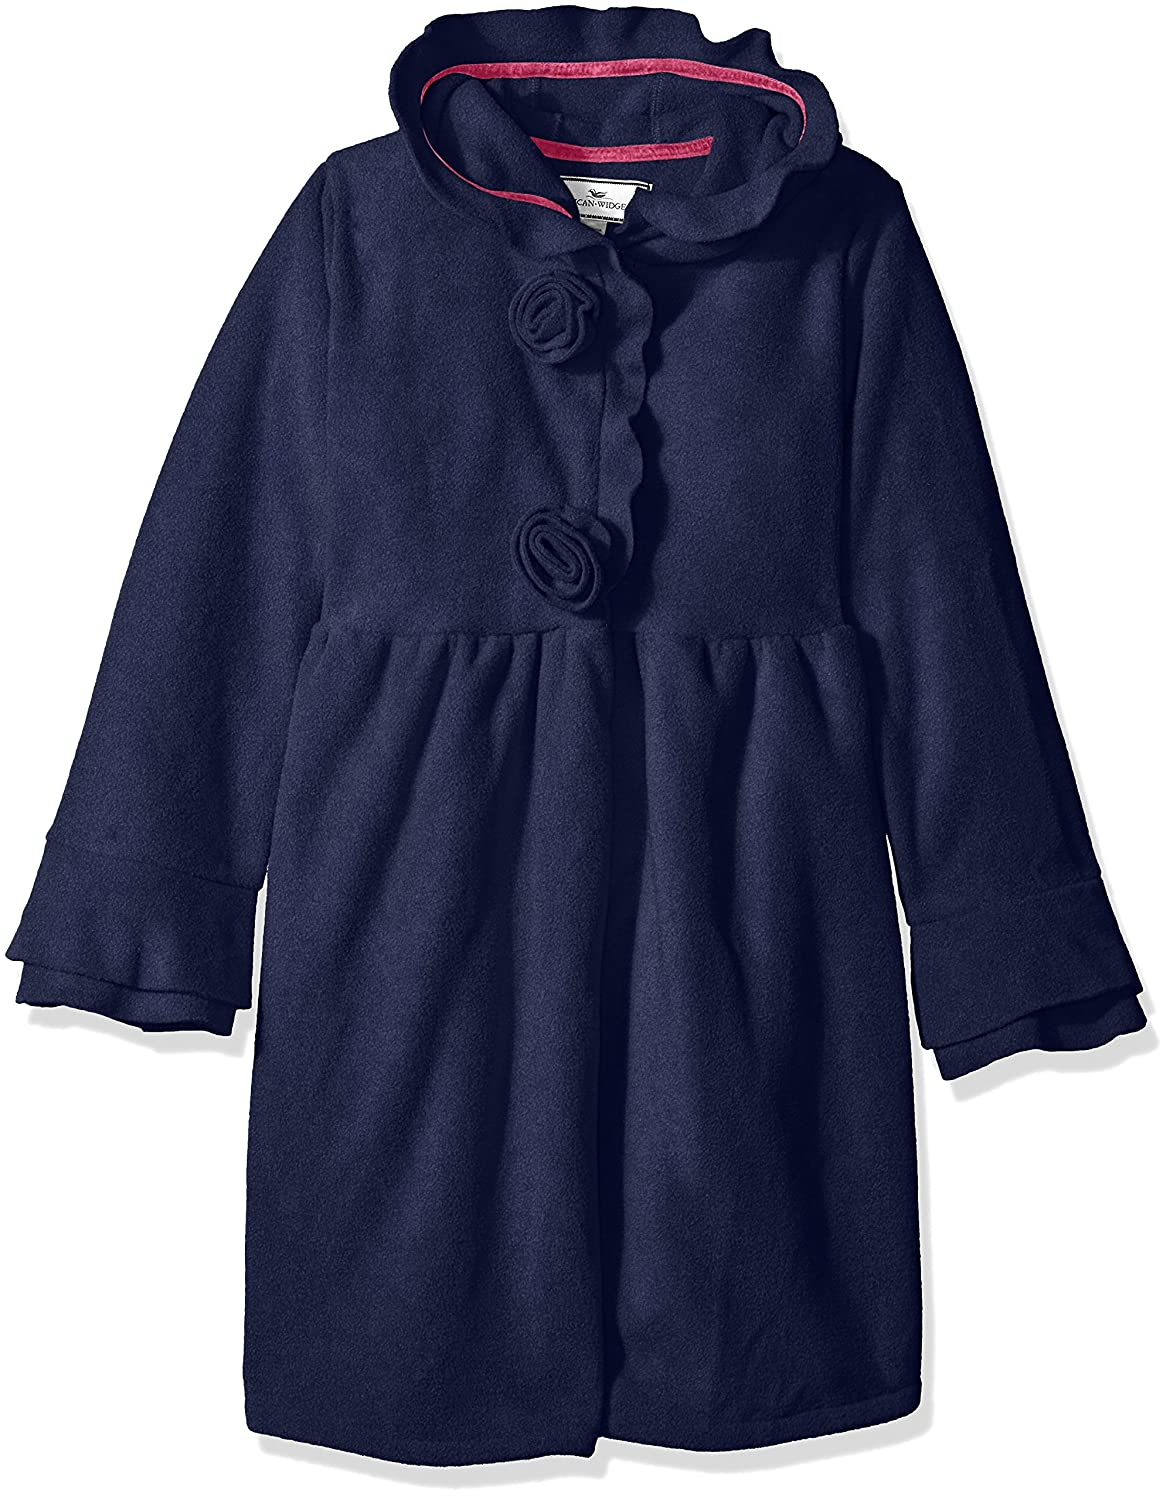 Widgeon Girls Fleece Hooded Rosette Coat